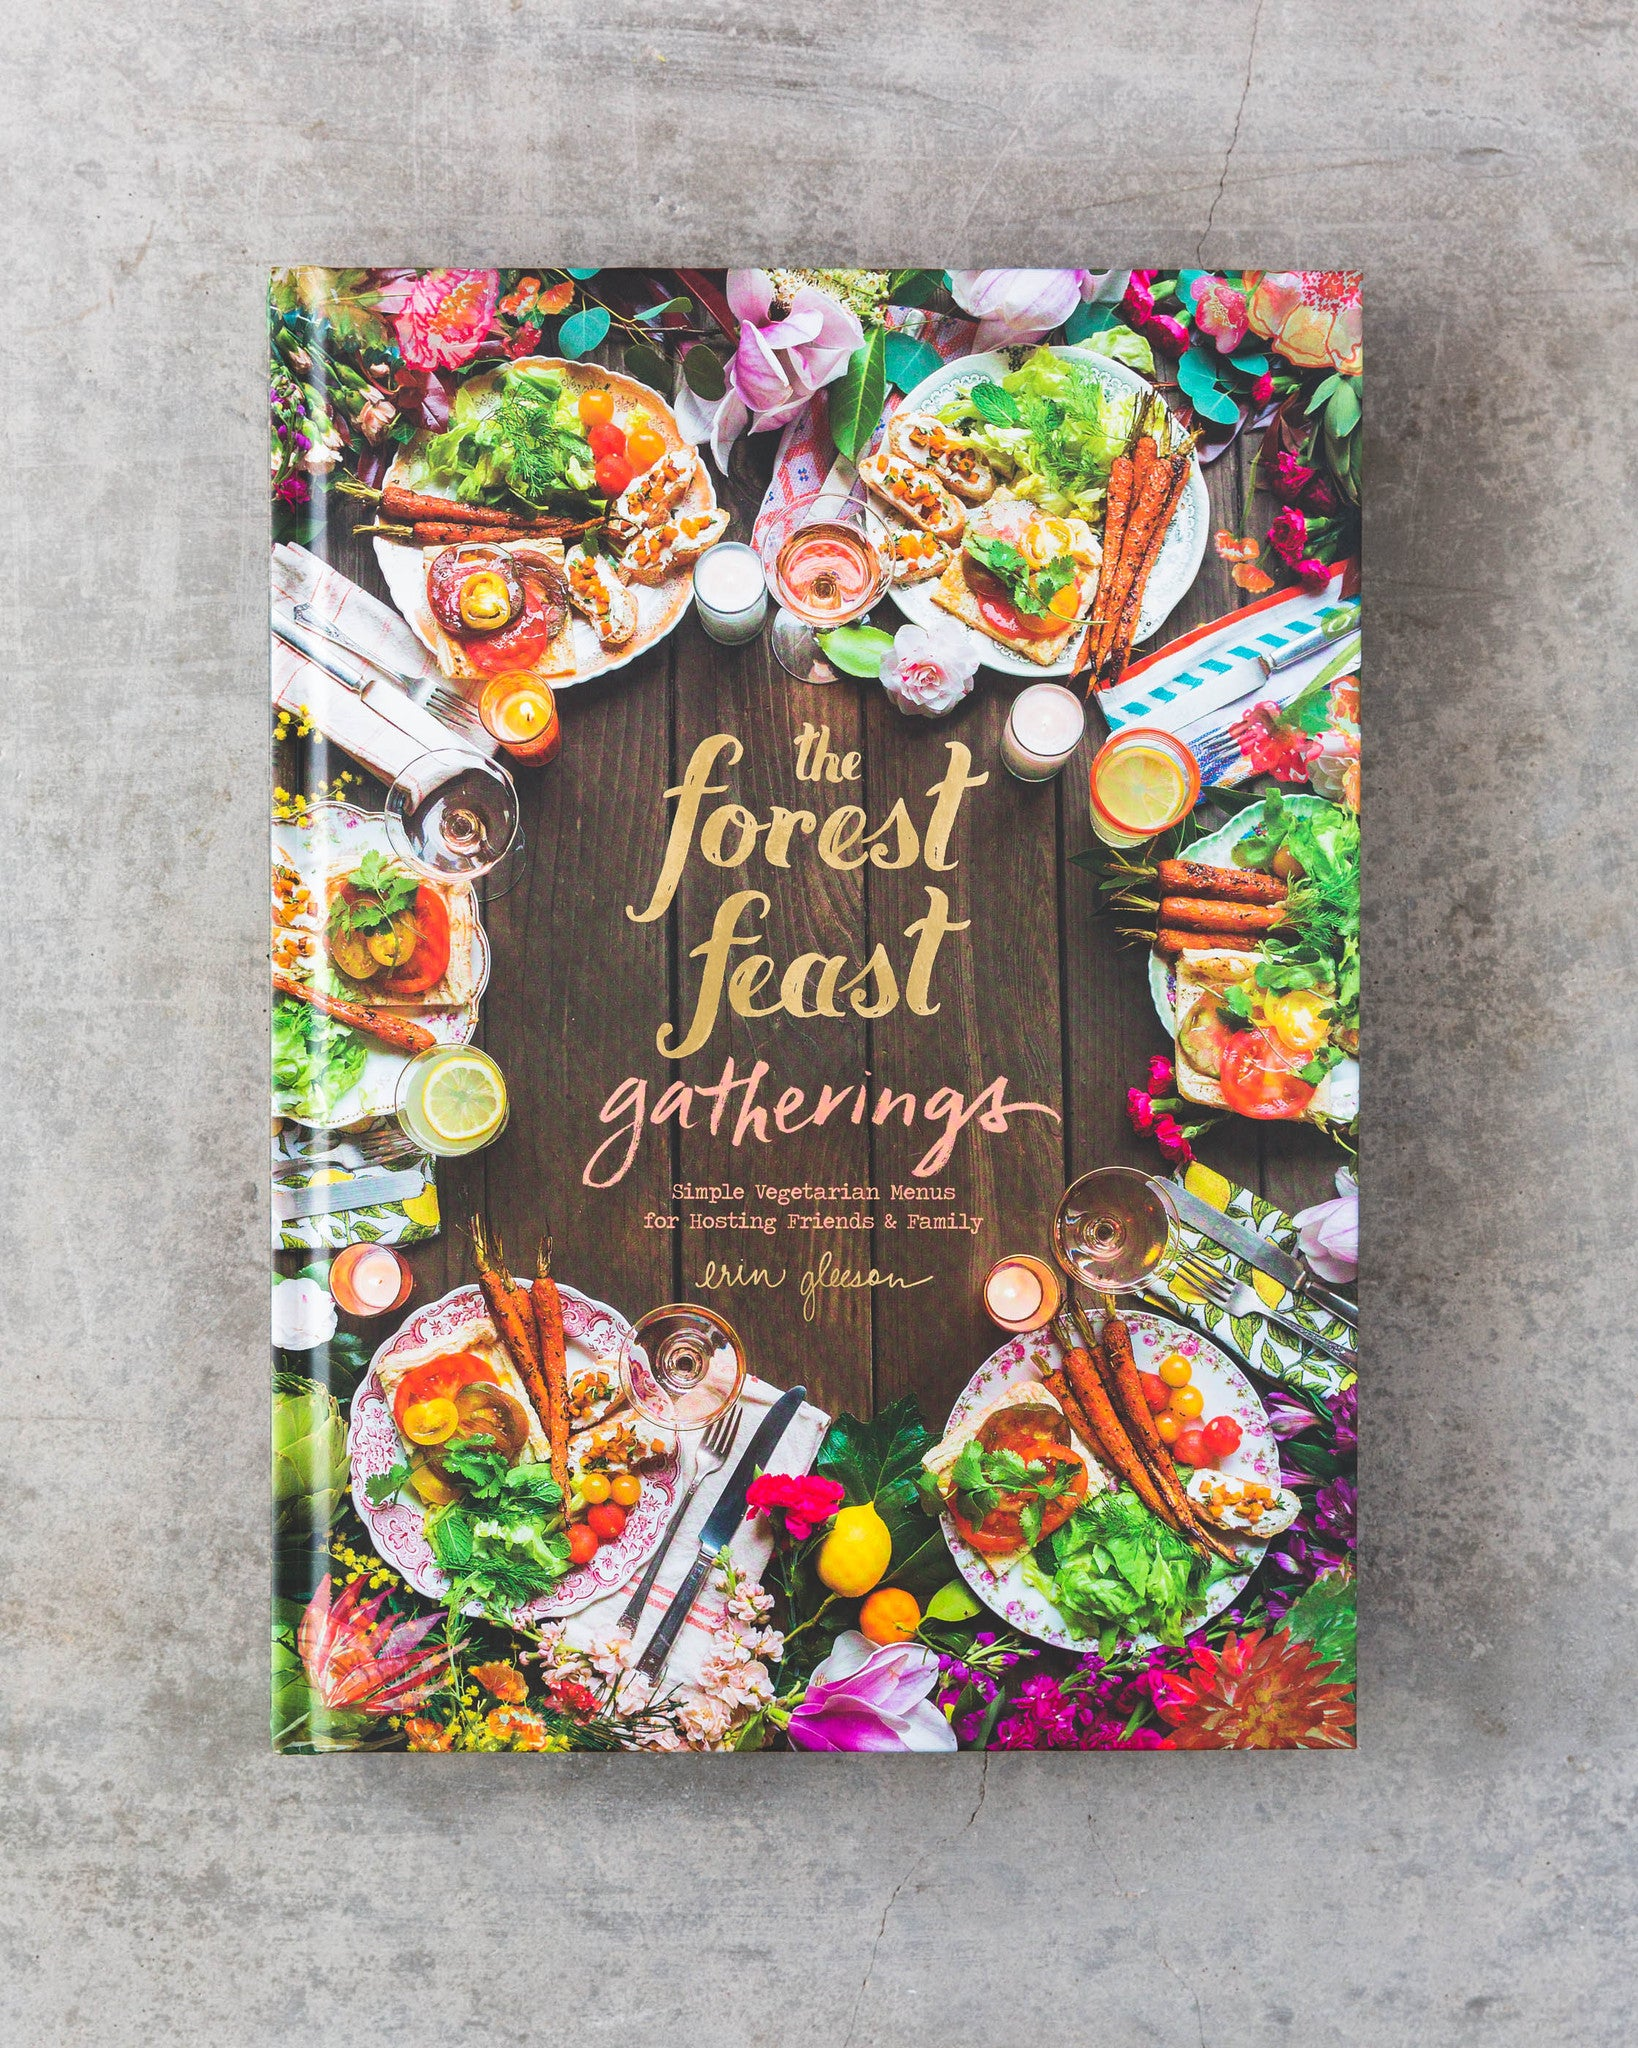 The Forest Feast Gatherings Cookbook by Erin Gleeson